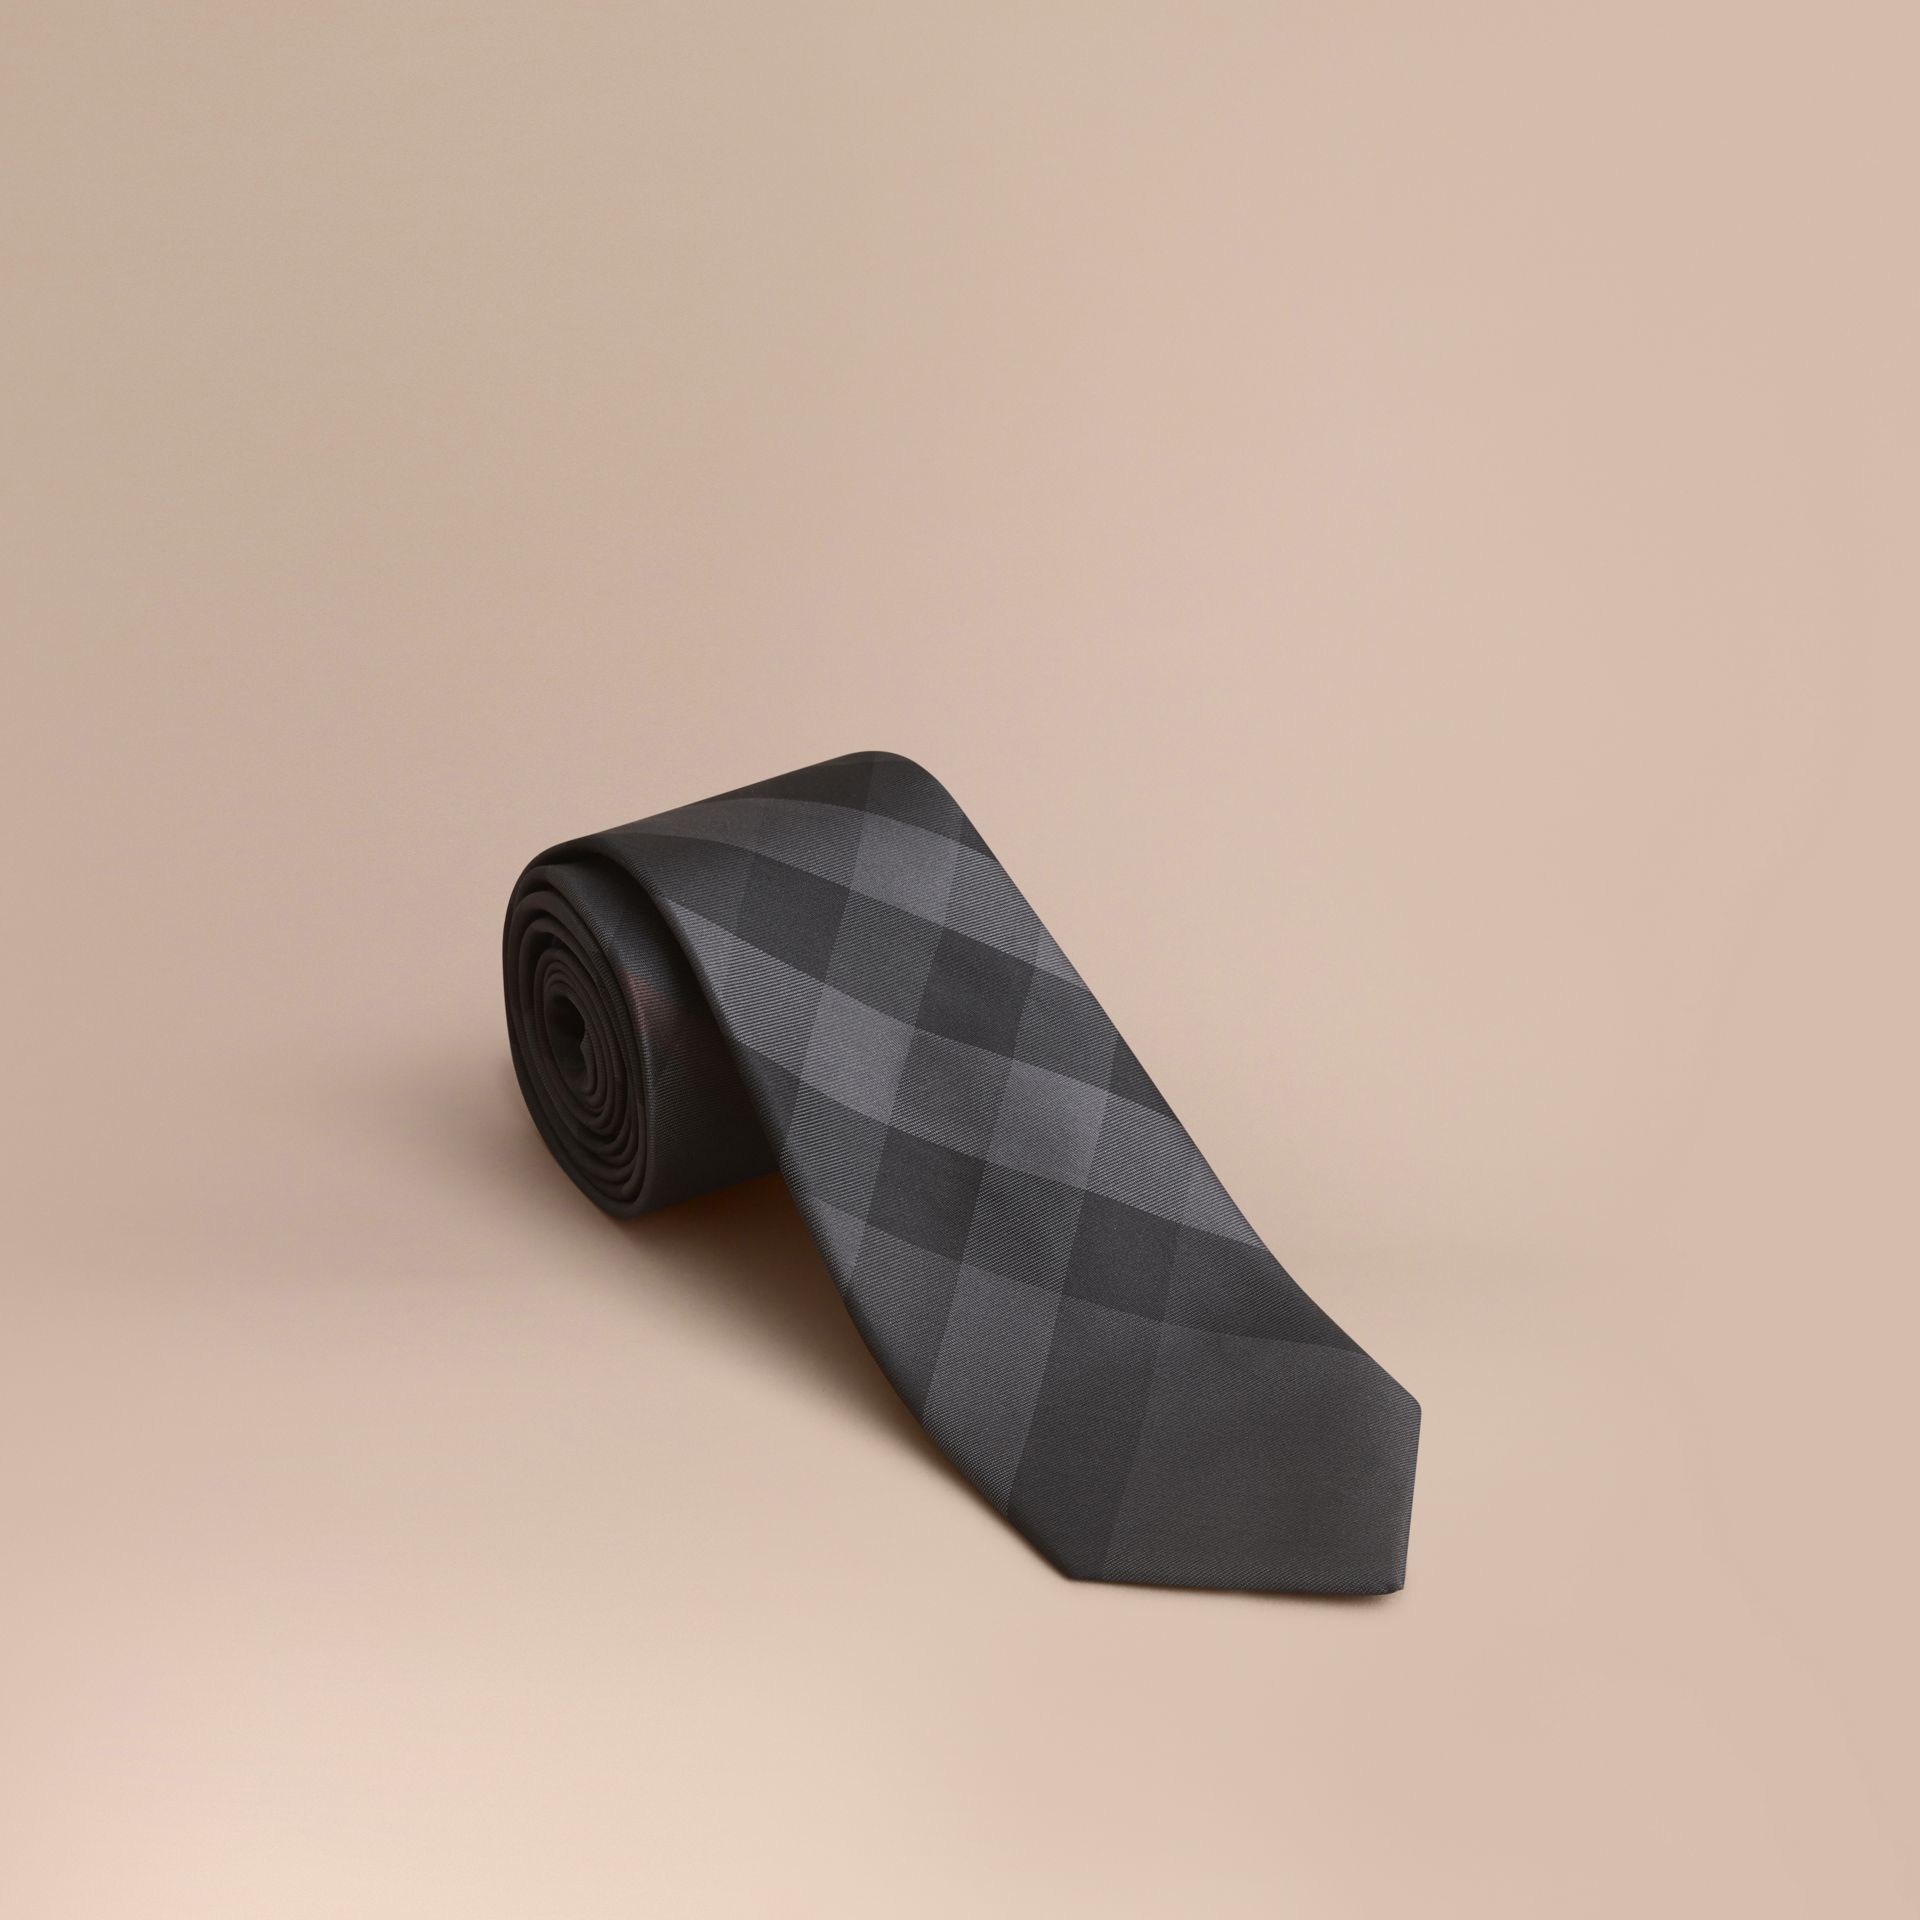 Cravate moderne en soie à motif check (Anthracite) - Homme | Burberry - photo de la galerie 1